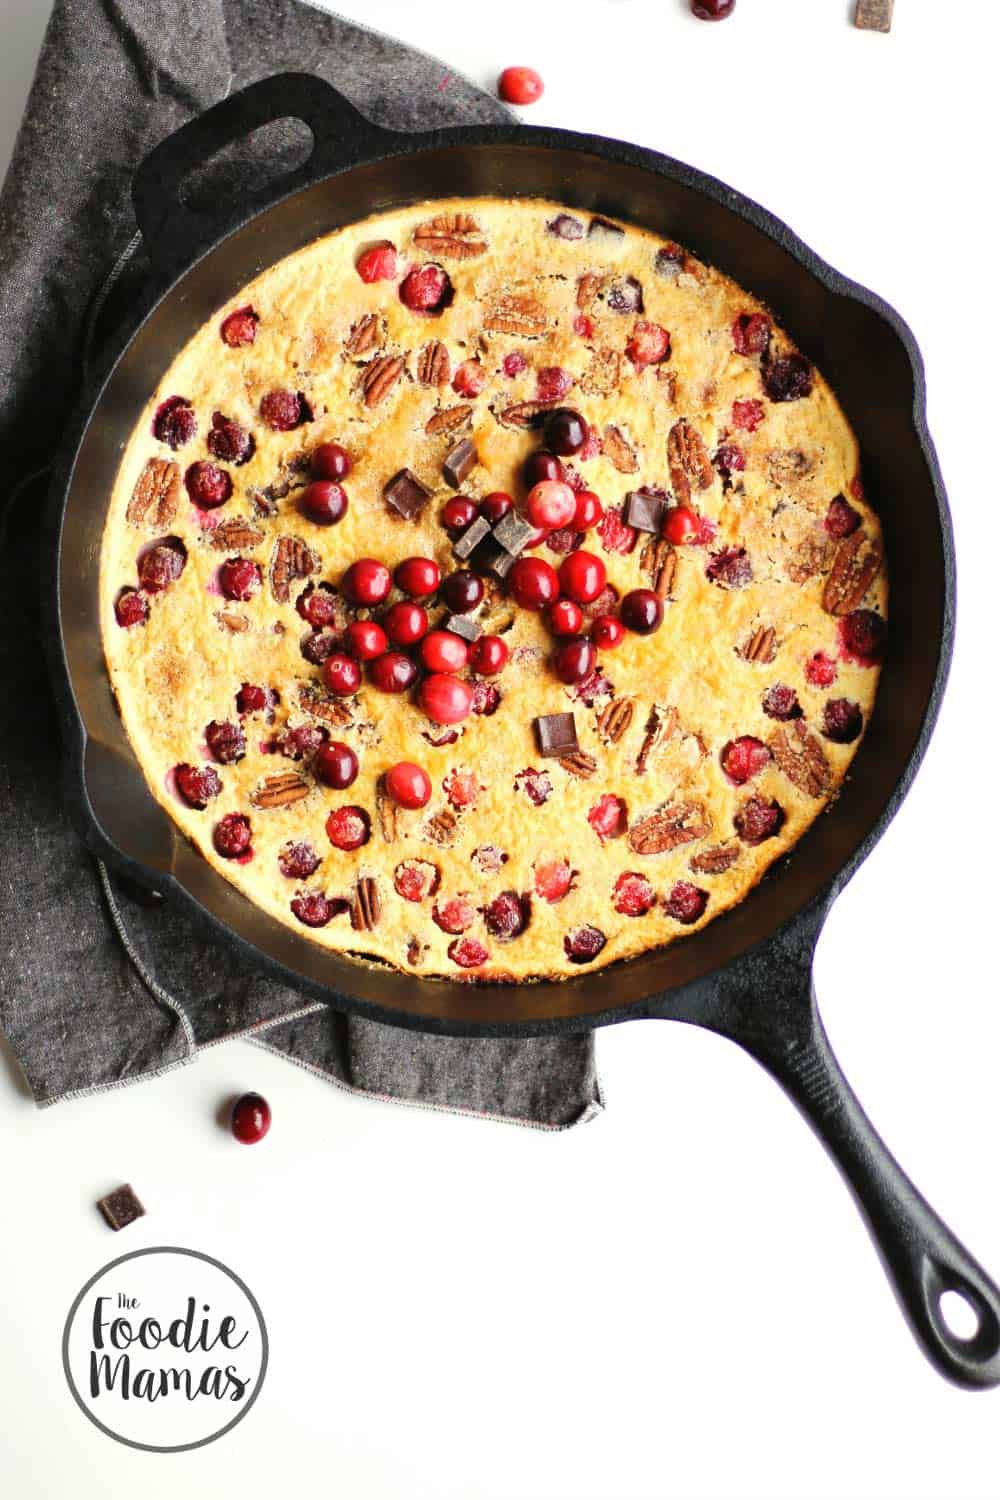 Cranberry clafoutis with dark chocolate and pecans + 10 amazing holiday dessert recipes! Amazing holiday dessert recipes from your favorite food bloggers, The Foodie Mamas!